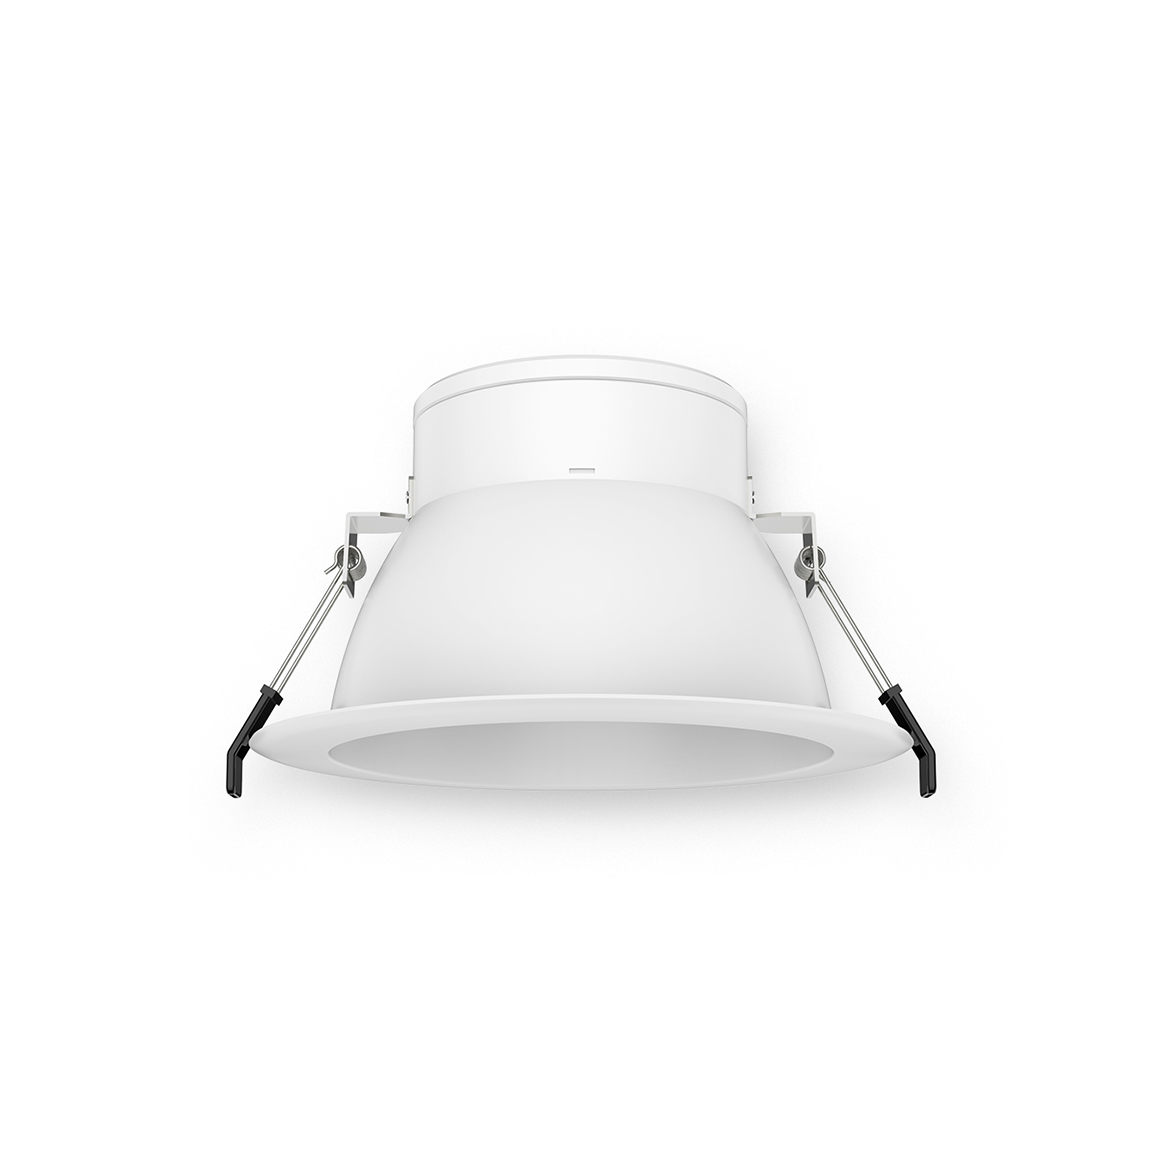 DownLight DS1 3700lm